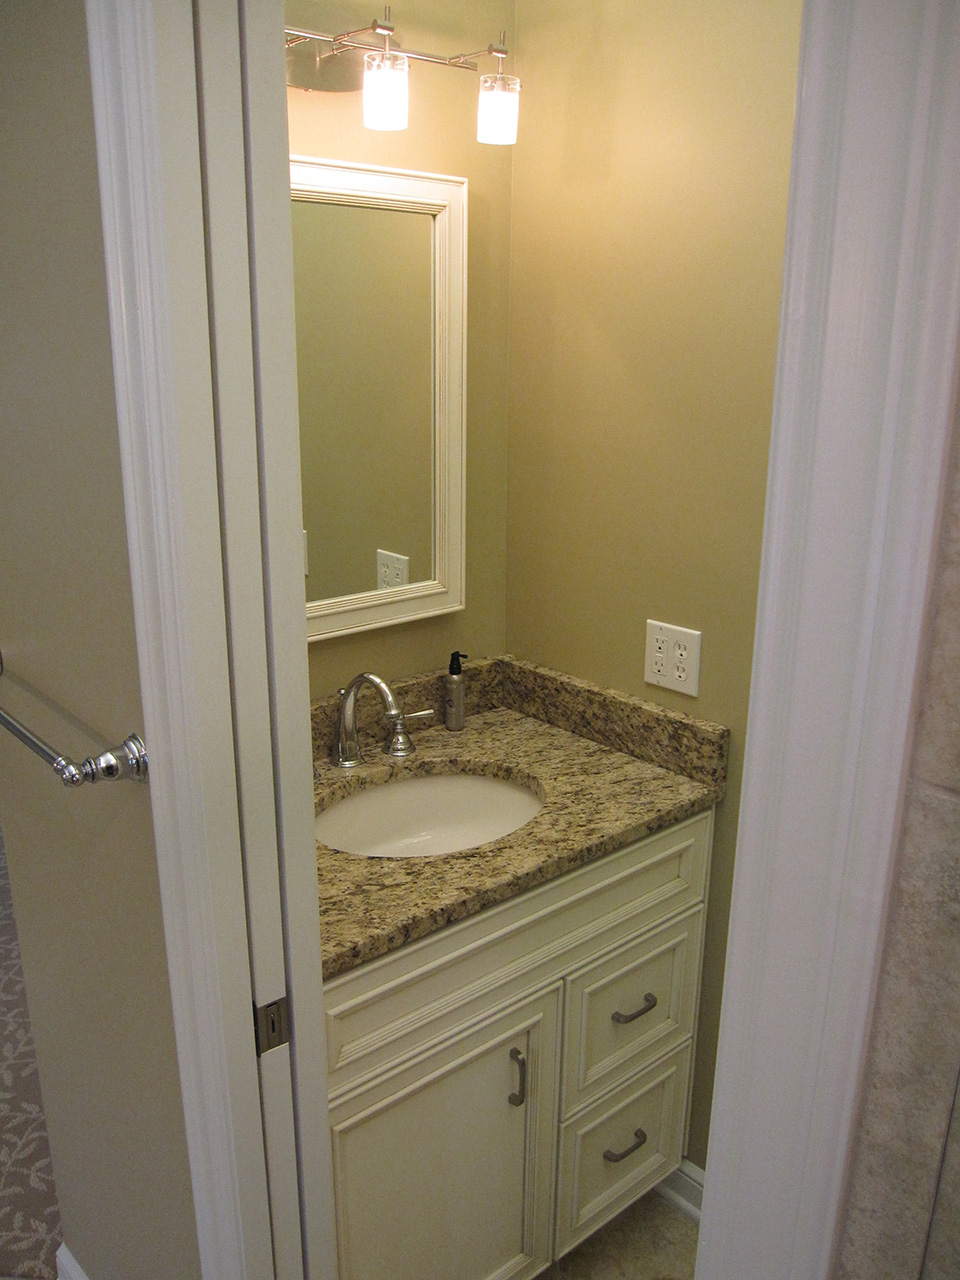 marble-sink-bathroom.jpg